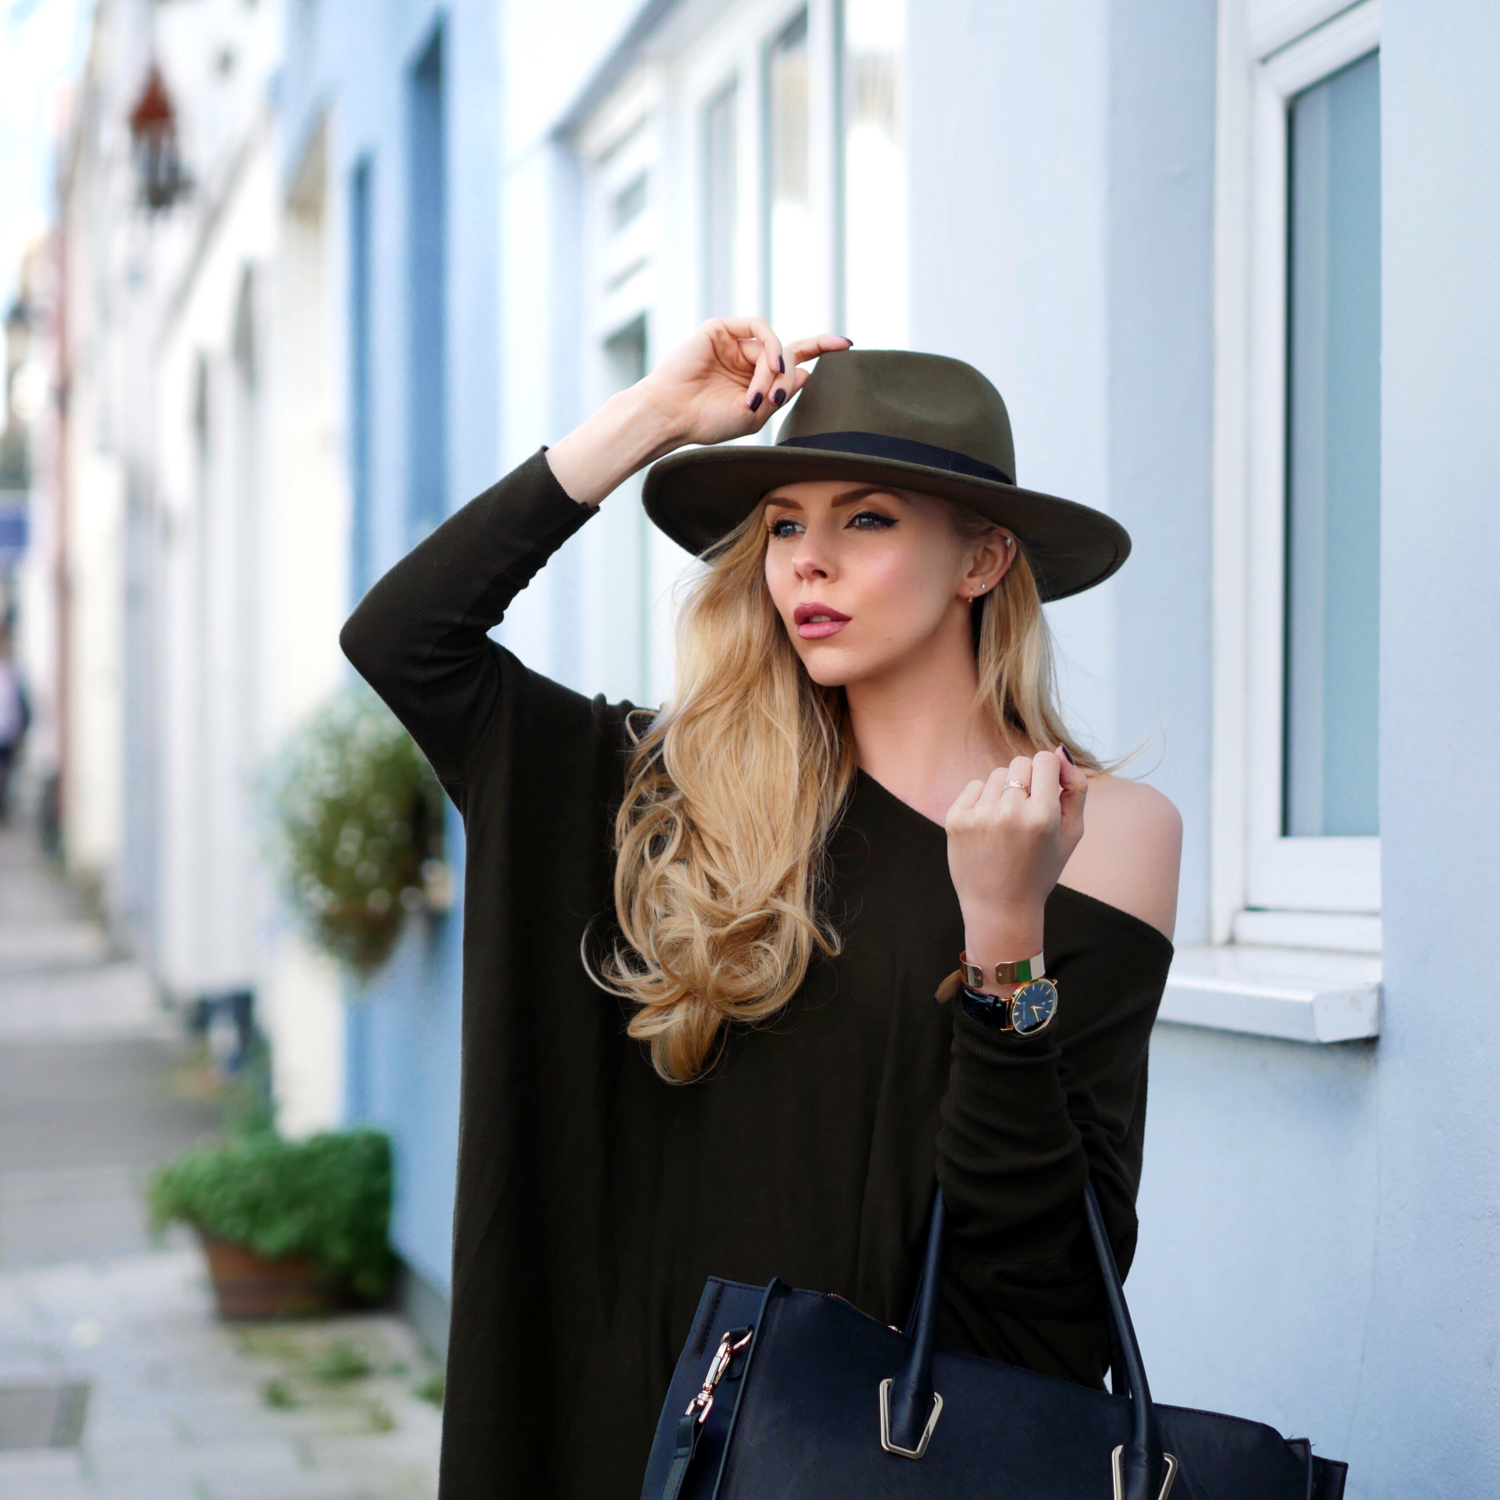 Uk blogger british blogger autumn style military fashion street style ootd laura blair Girl fashion style london